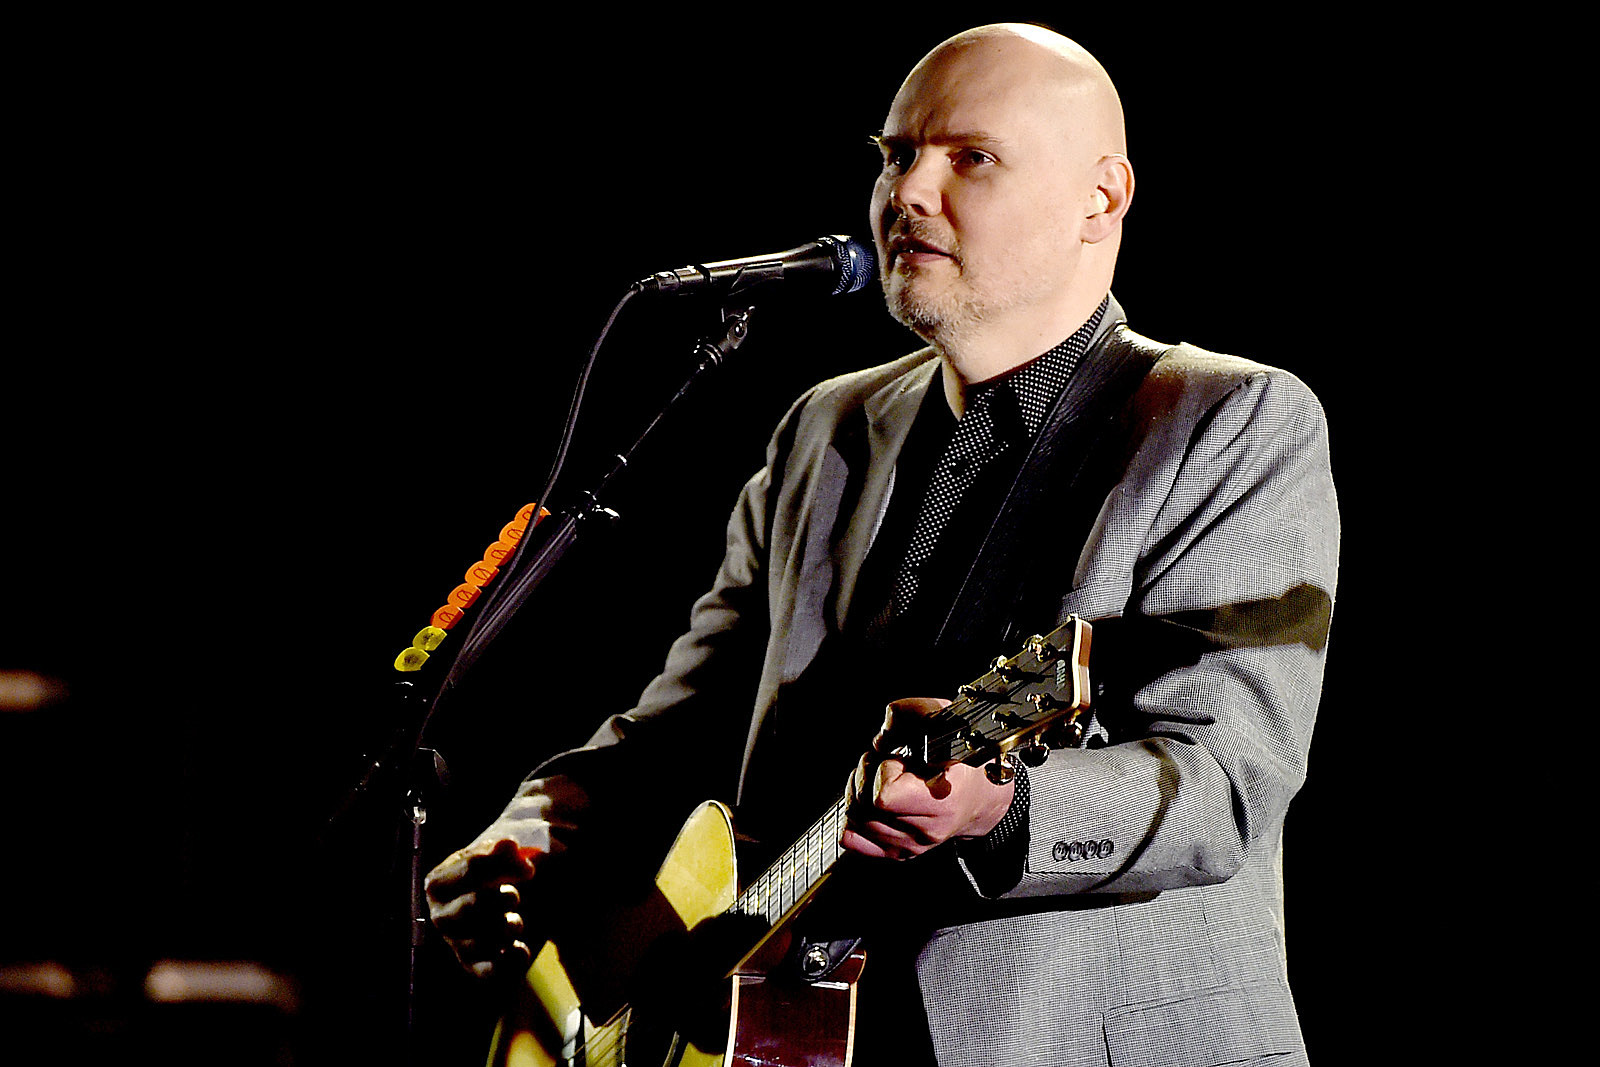 Billy Corgan Tells Fans to Reject 'Stench of the Crowd'